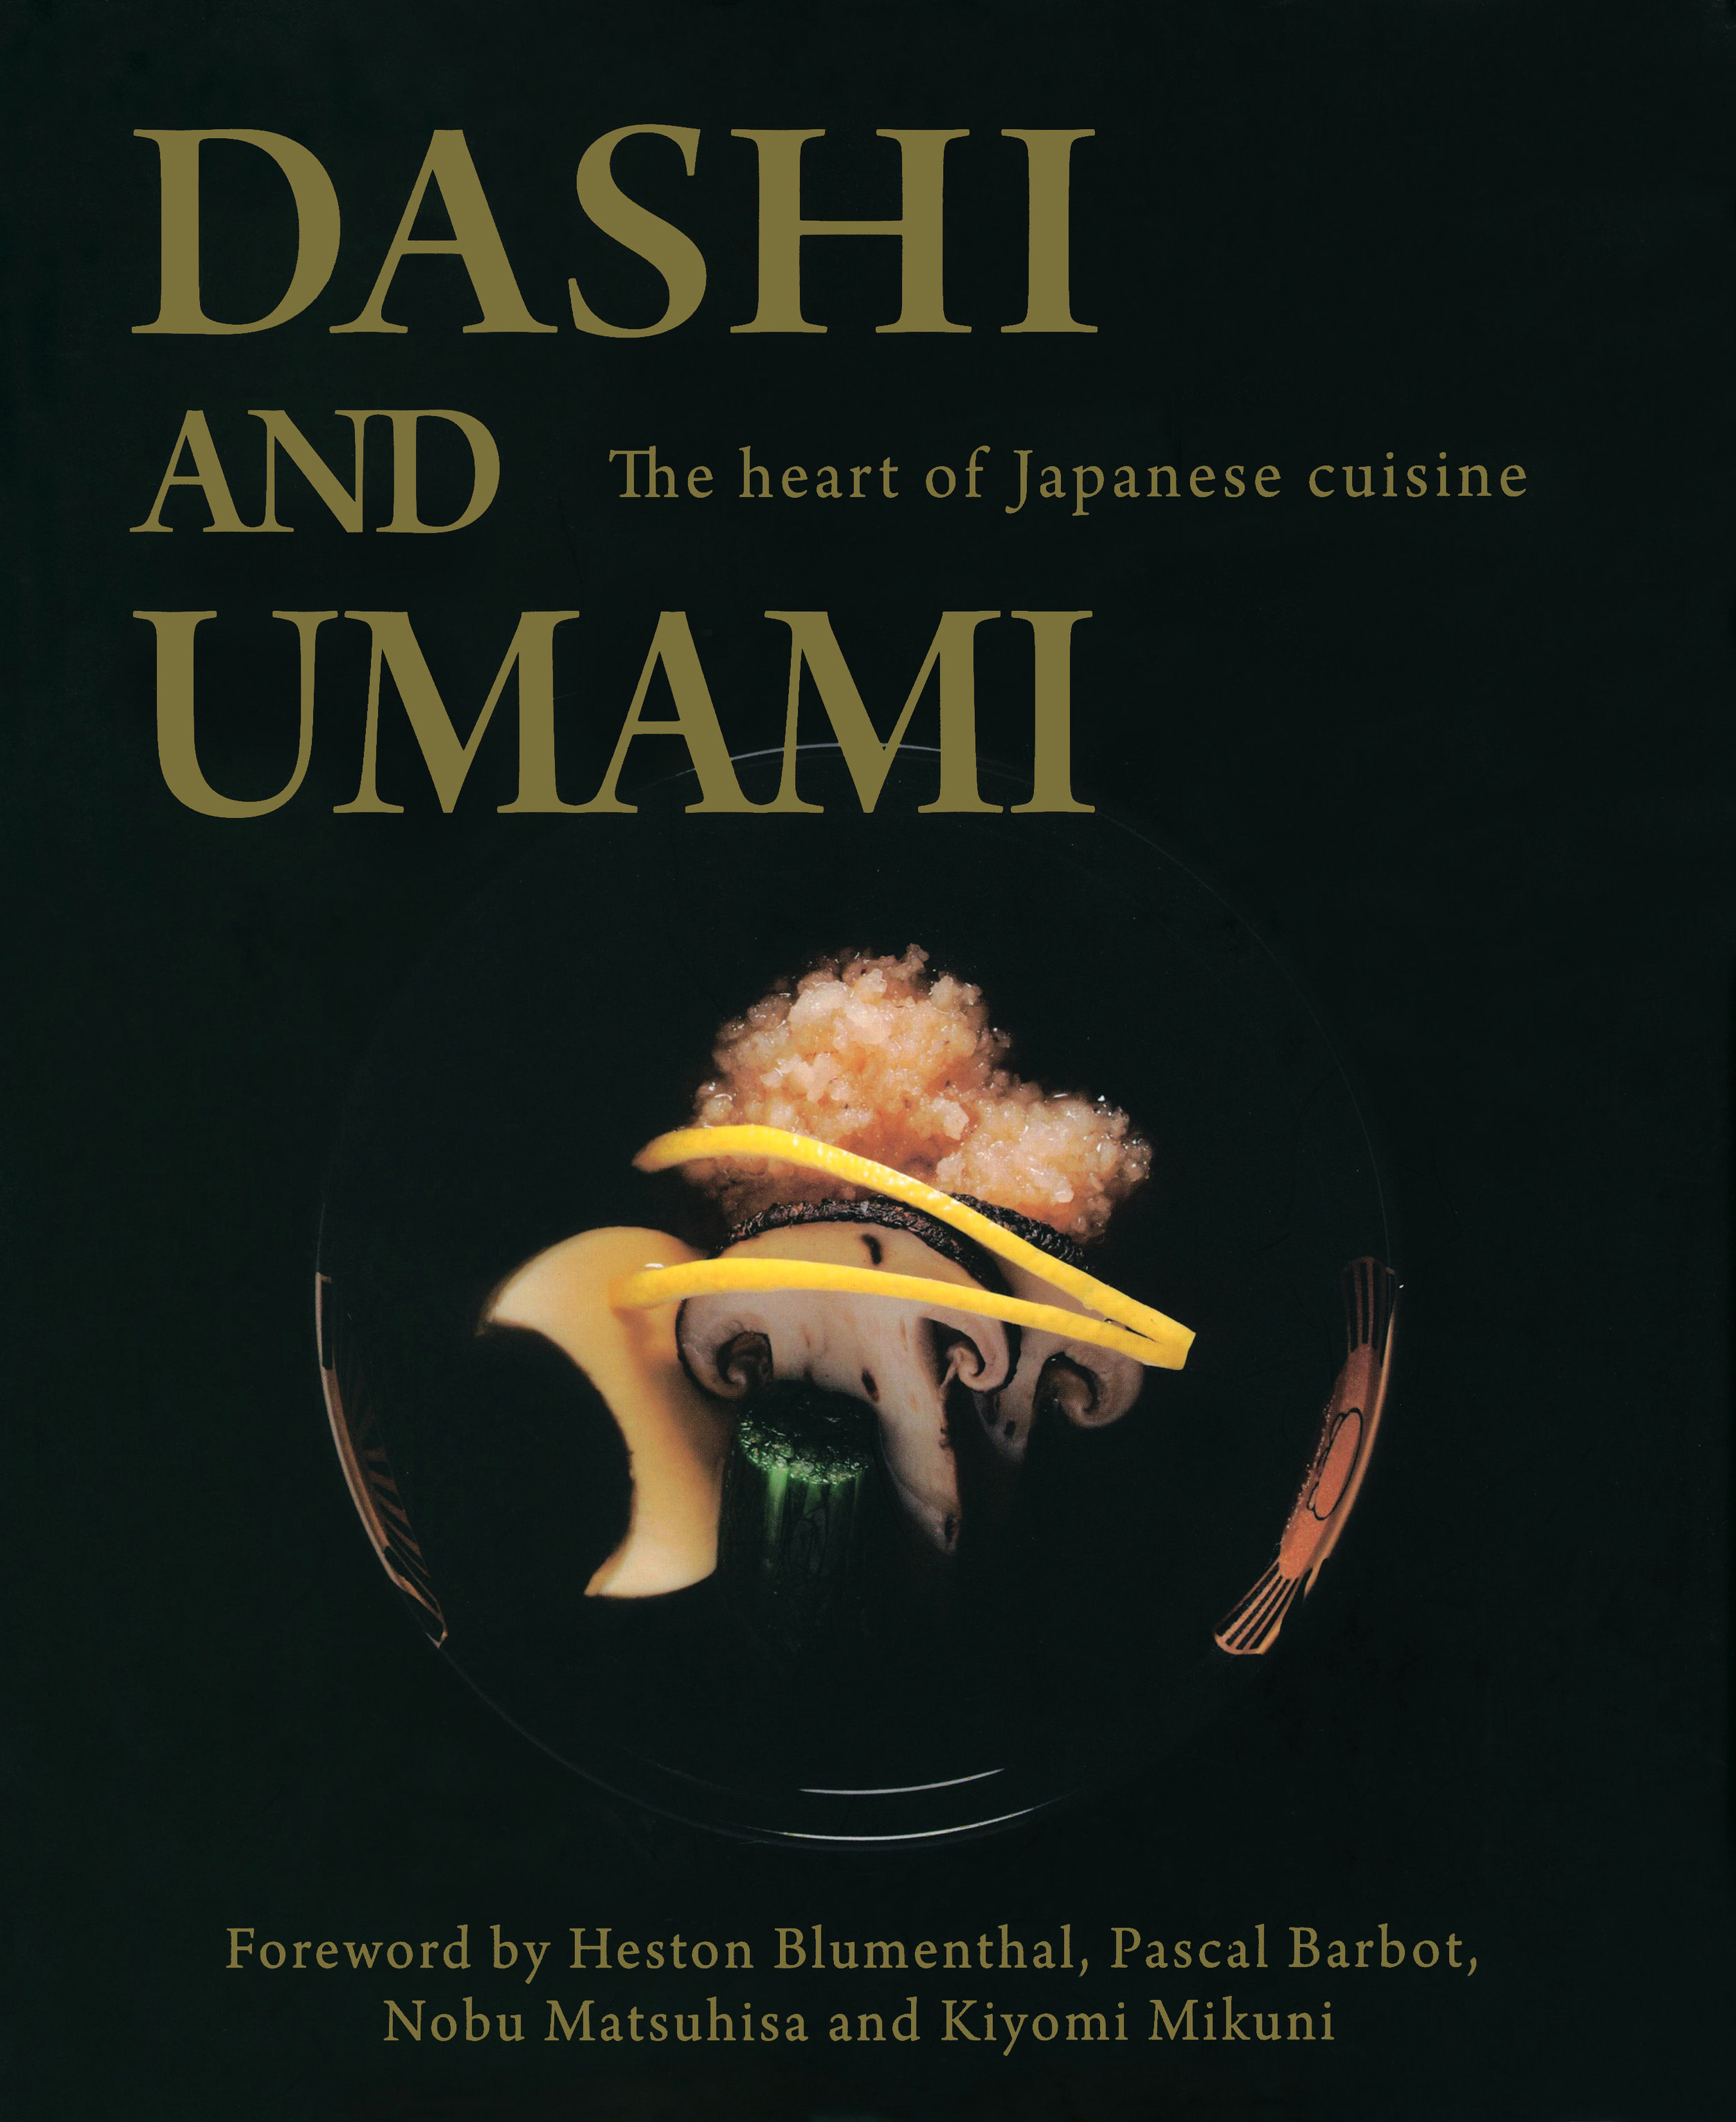 Lisa Gershenson on the indelible lessons learned from Dashi and Umami